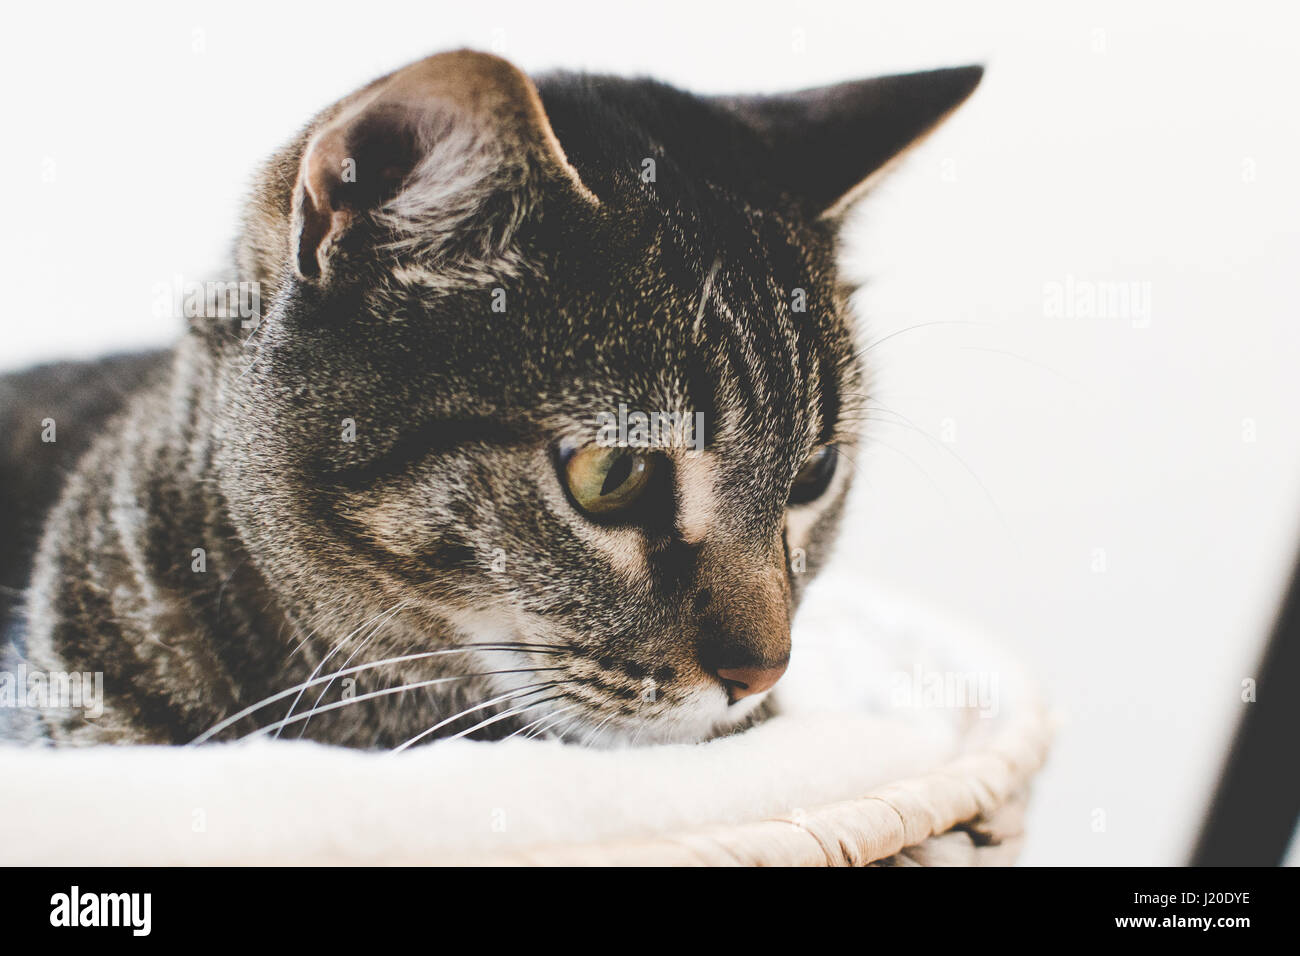 Tabby cat in a basket - Stock Image